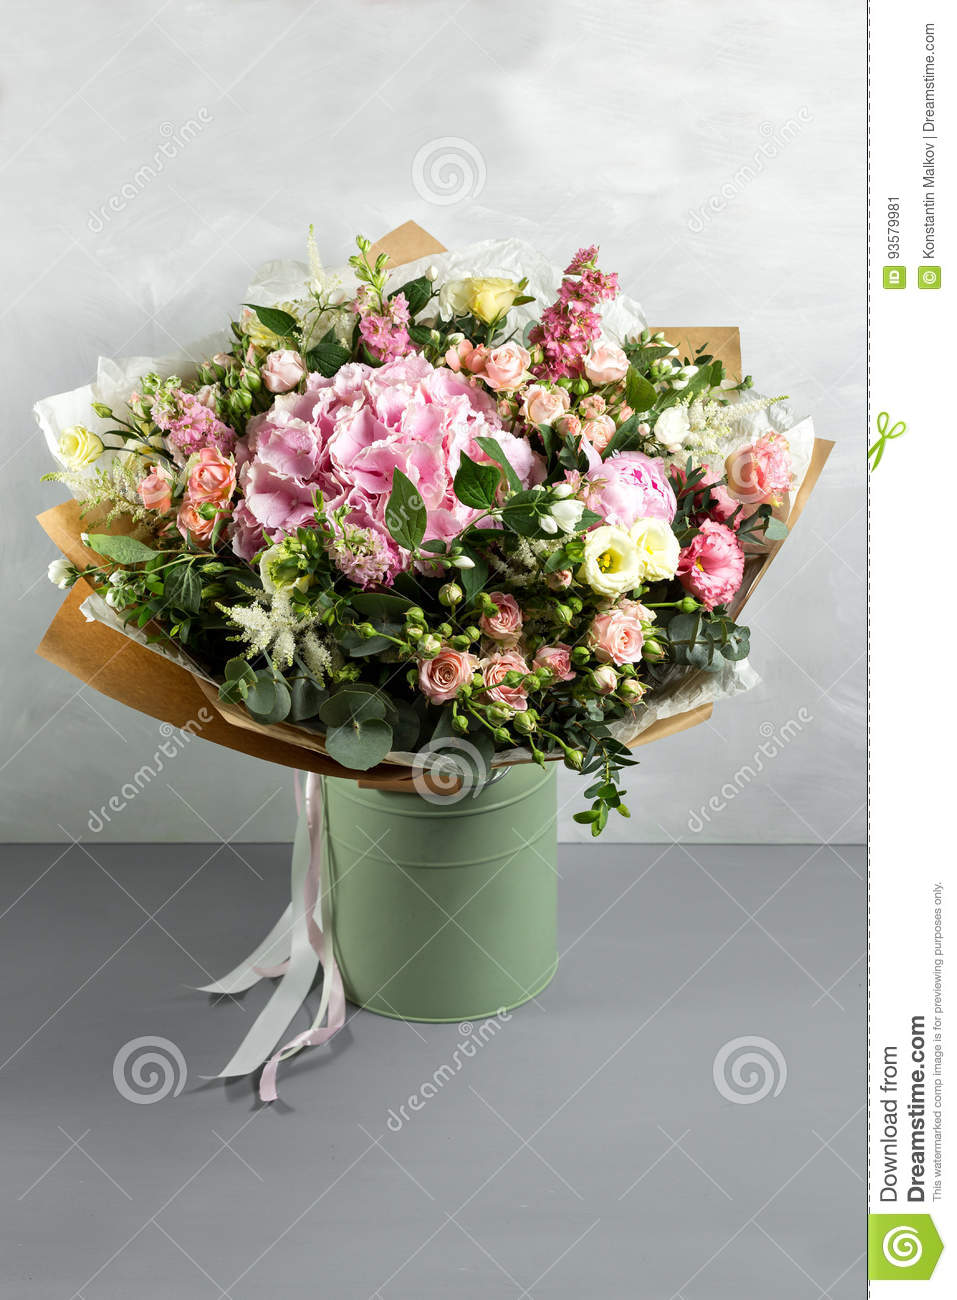 Still life with a bouquet of flowers the florist put together a download comp izmirmasajfo